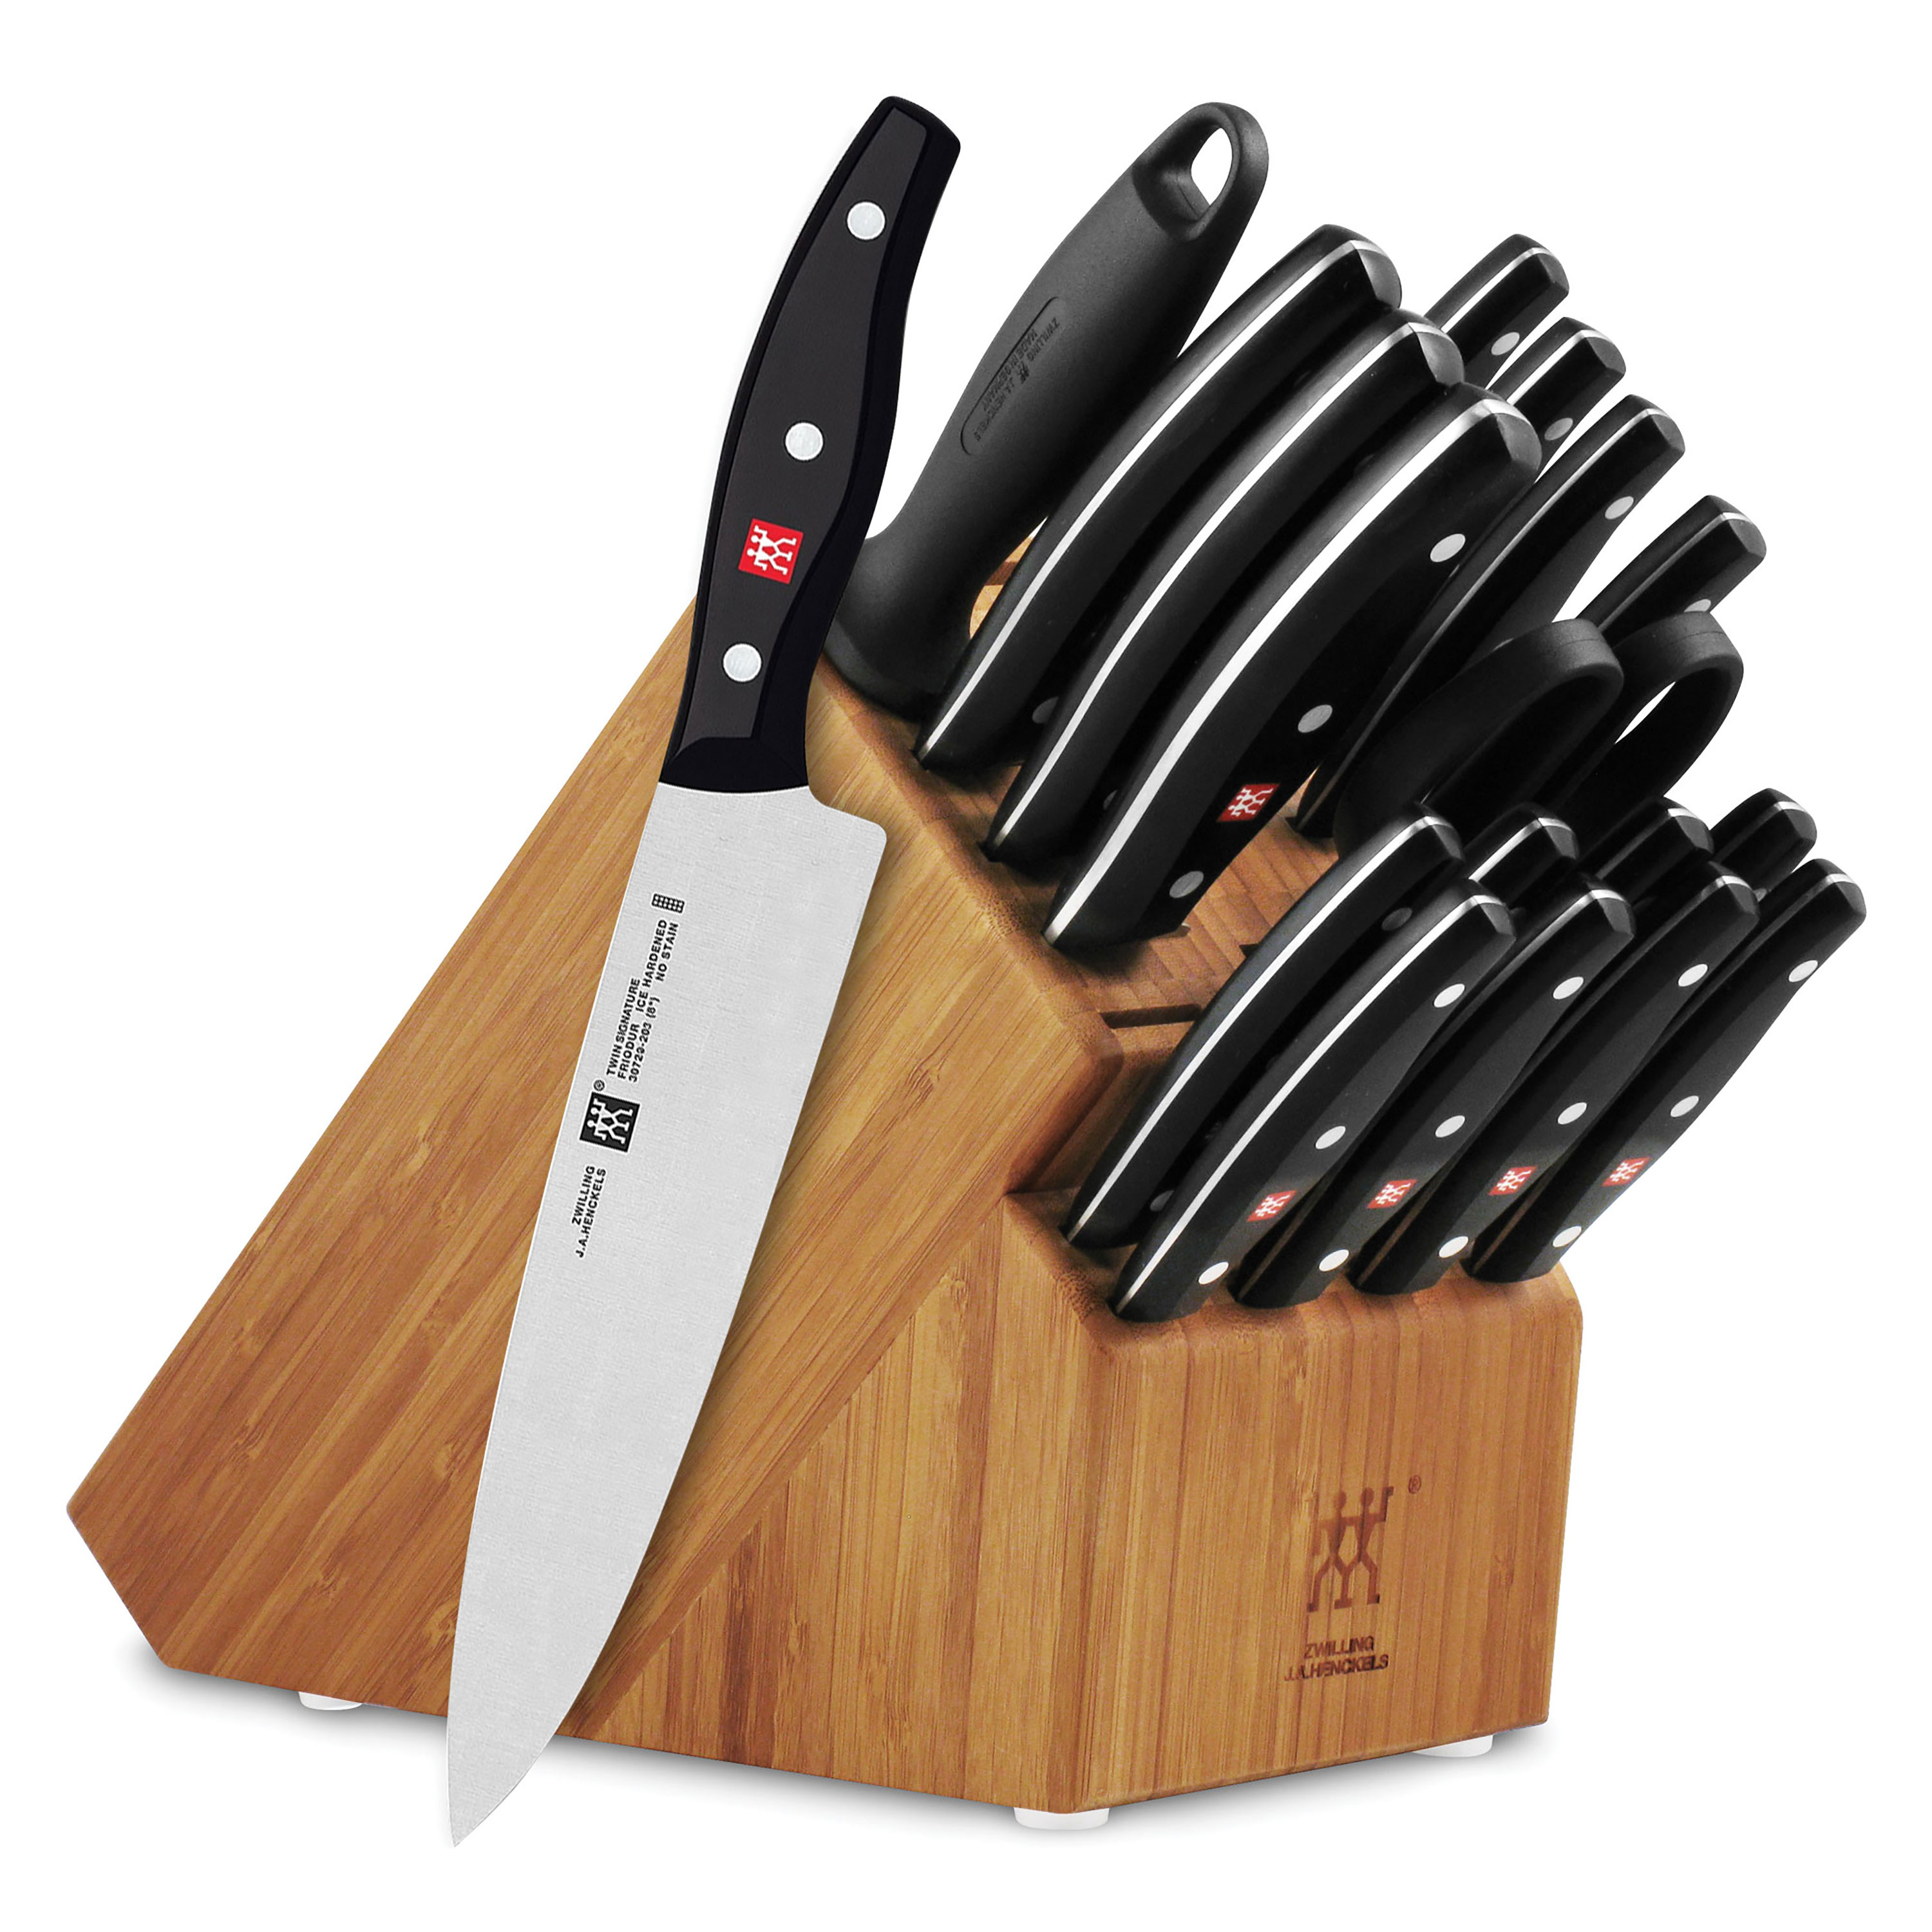 Raclette Tischgrill Zwilling J.a.henckels J A Henckels Twin Signature Knife Set 19 Piece With Block